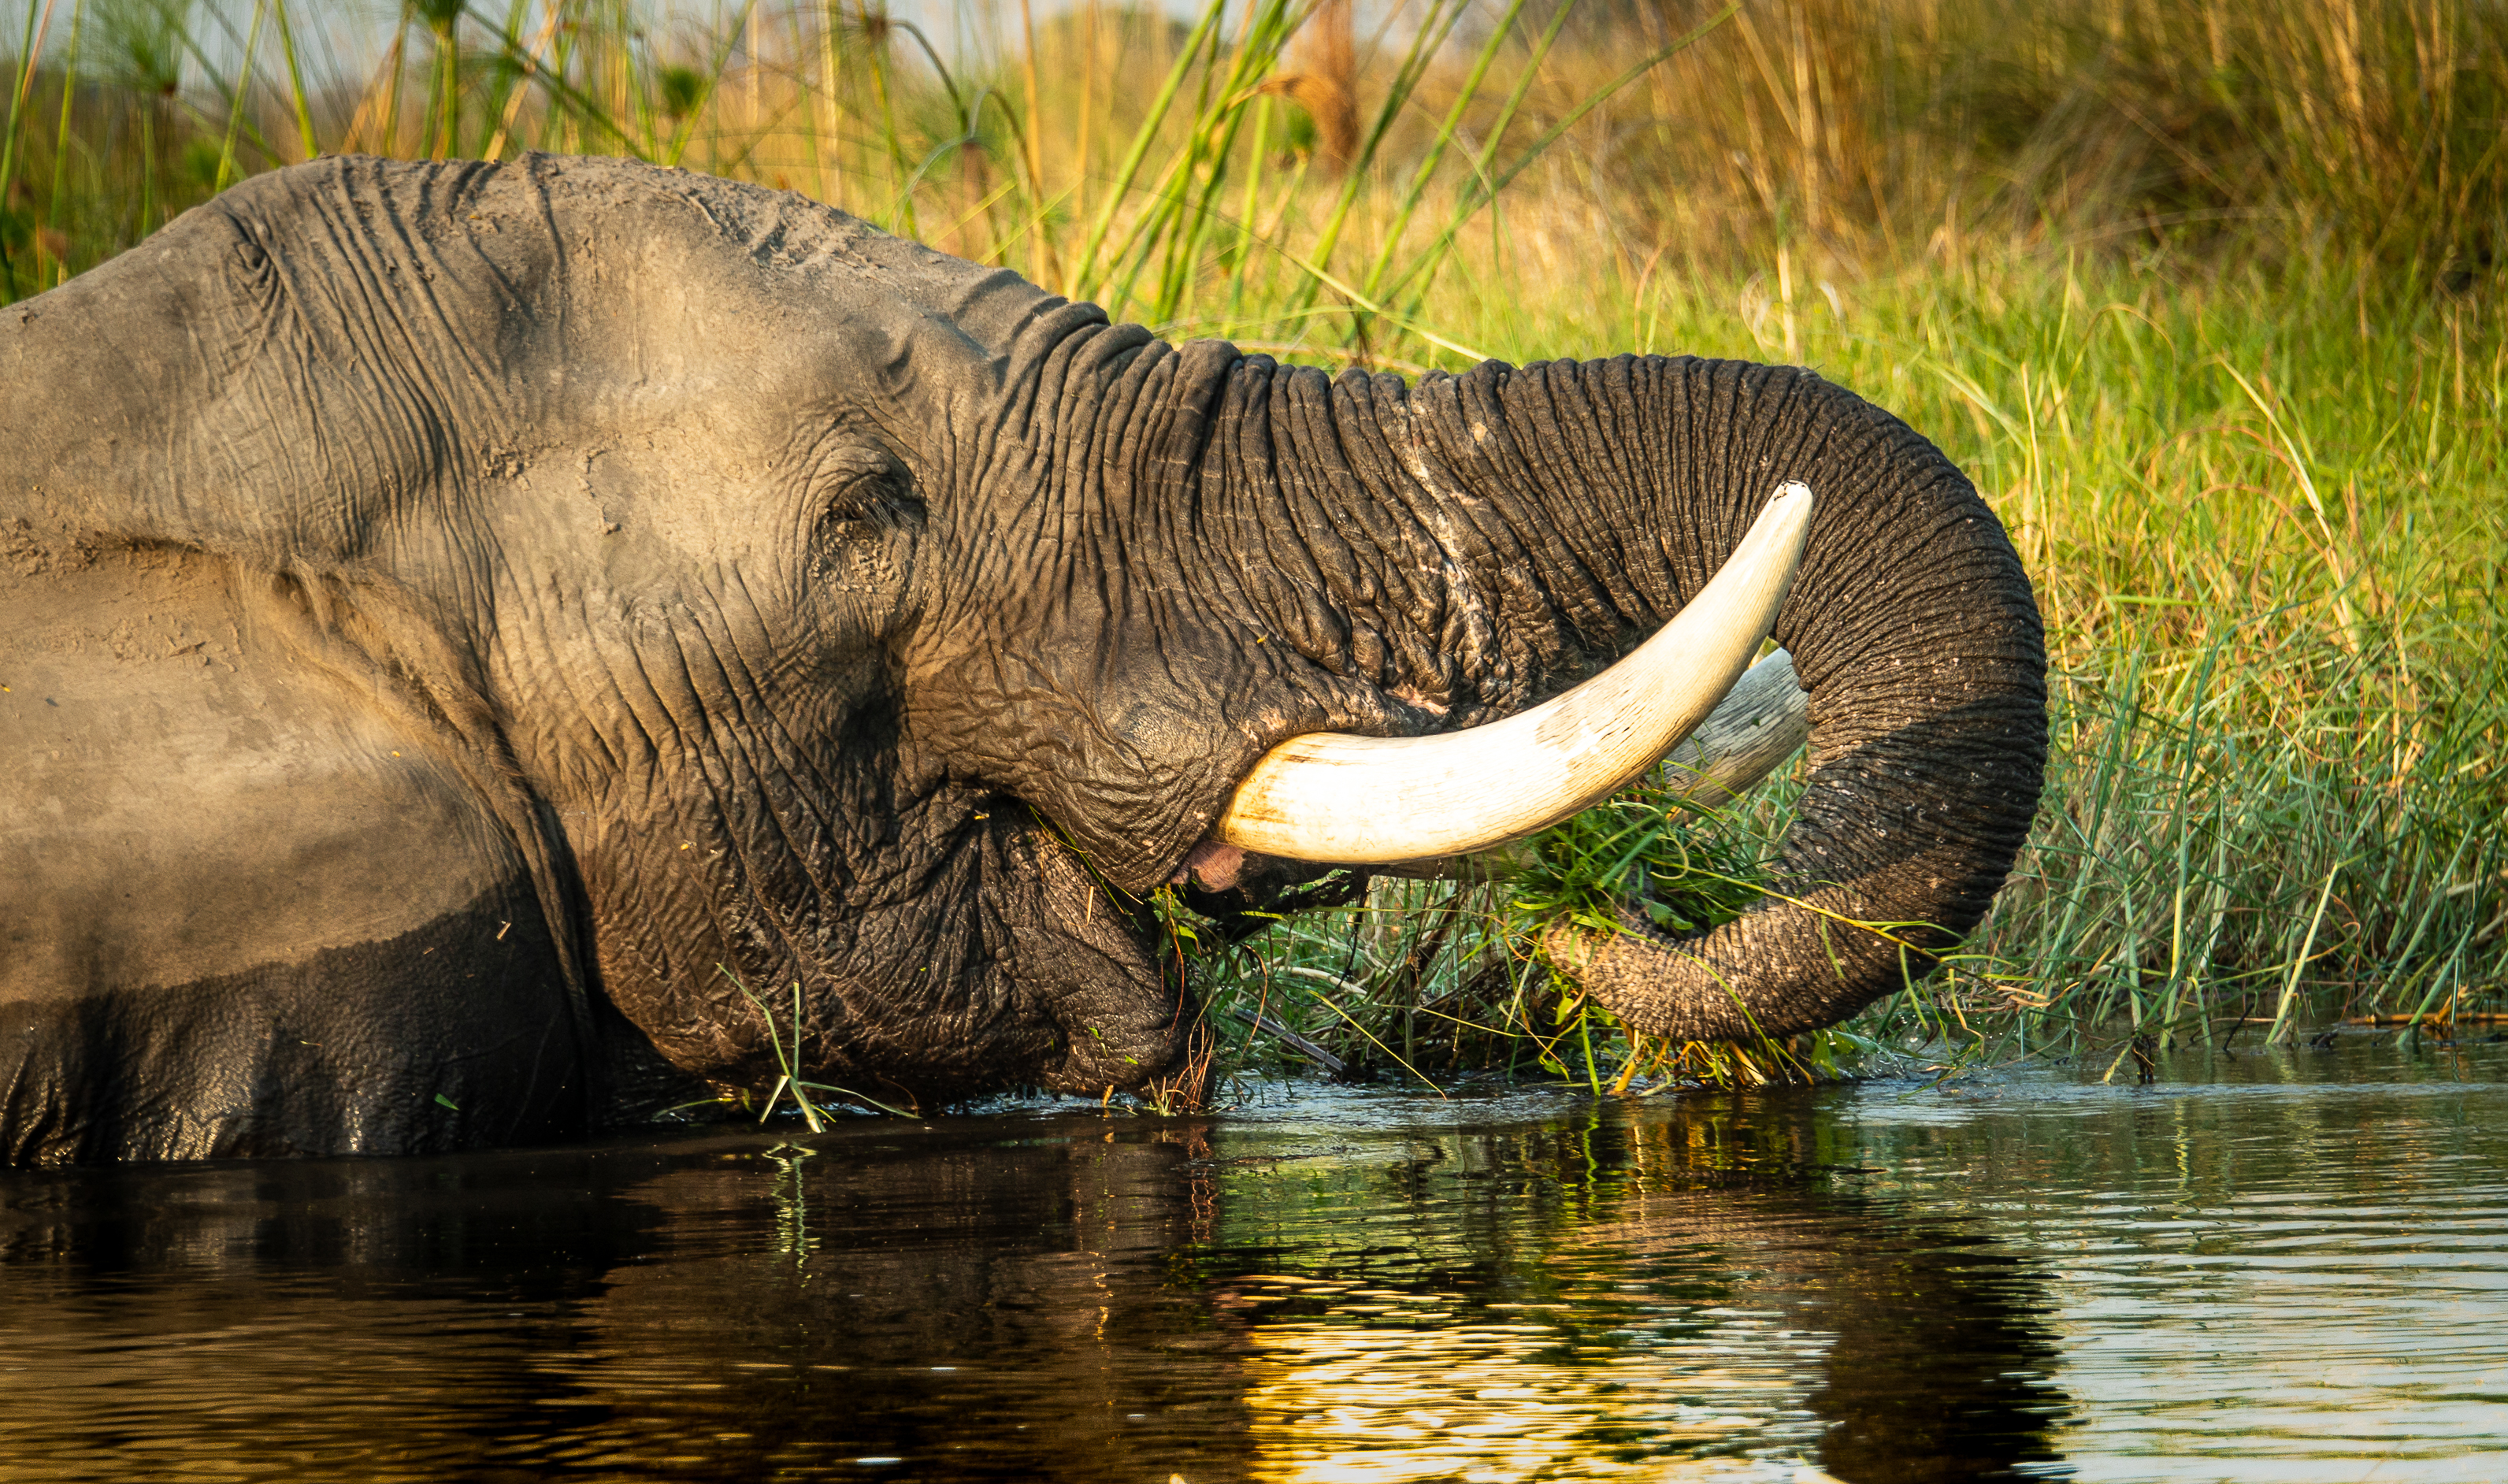 Elephant Lounging in River-3698